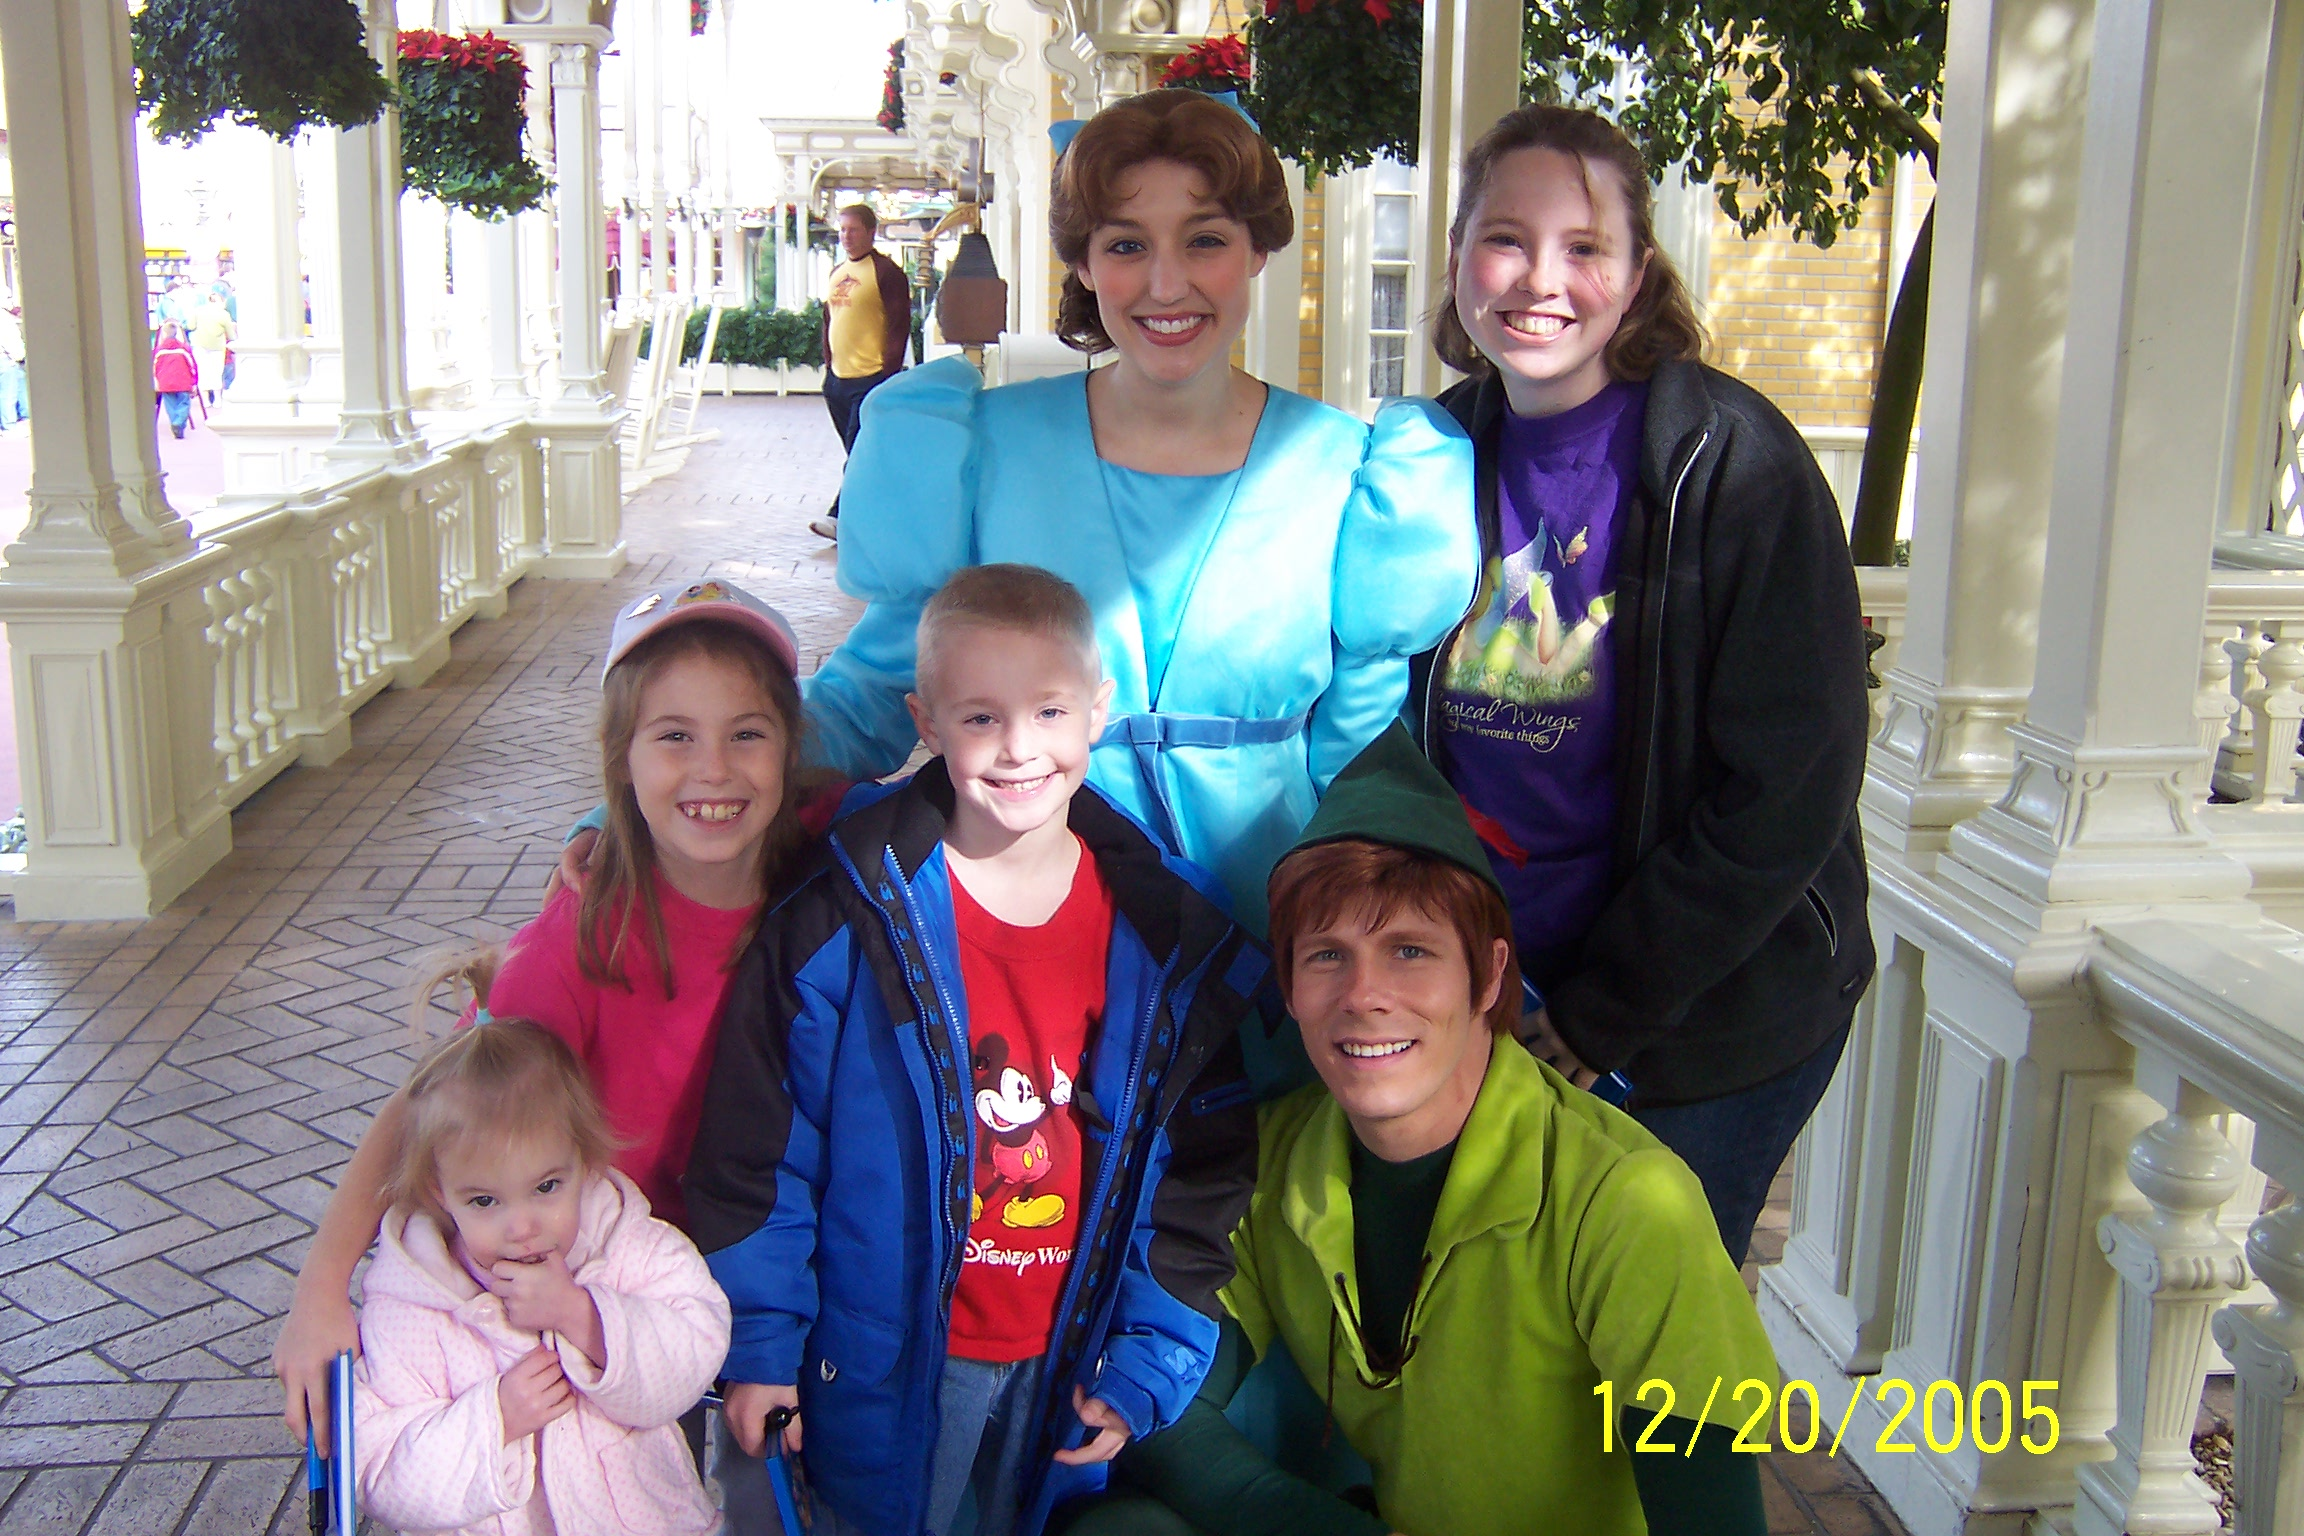 Wendy darling kennythepirates unofficial guide to disney world wendy with peter pan in 2005 kristyandbryce Image collections